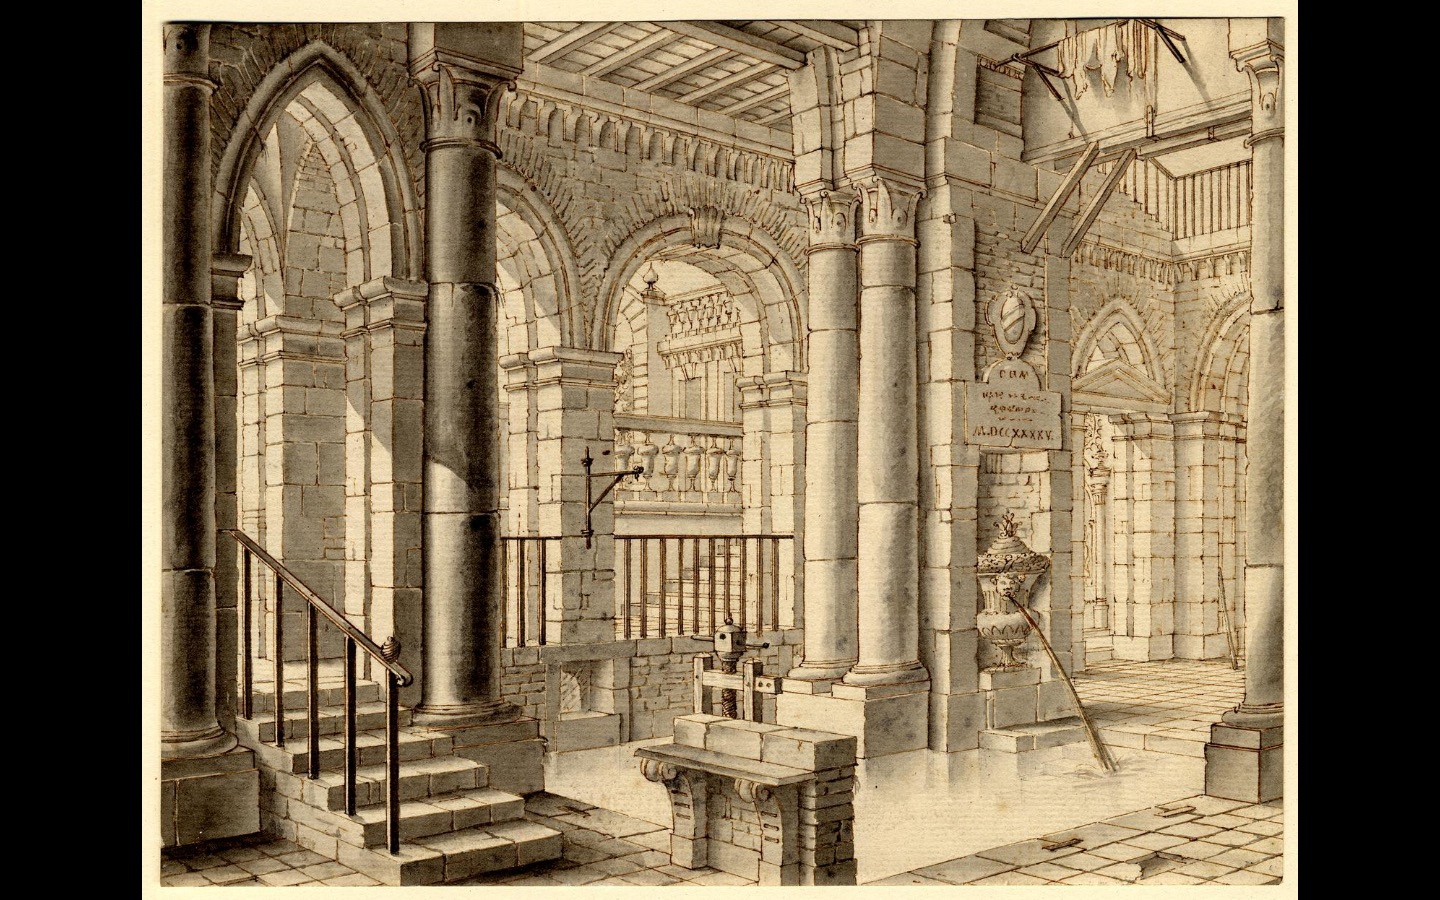 Photo of an 18th drawing of an imaginary marble palace interior